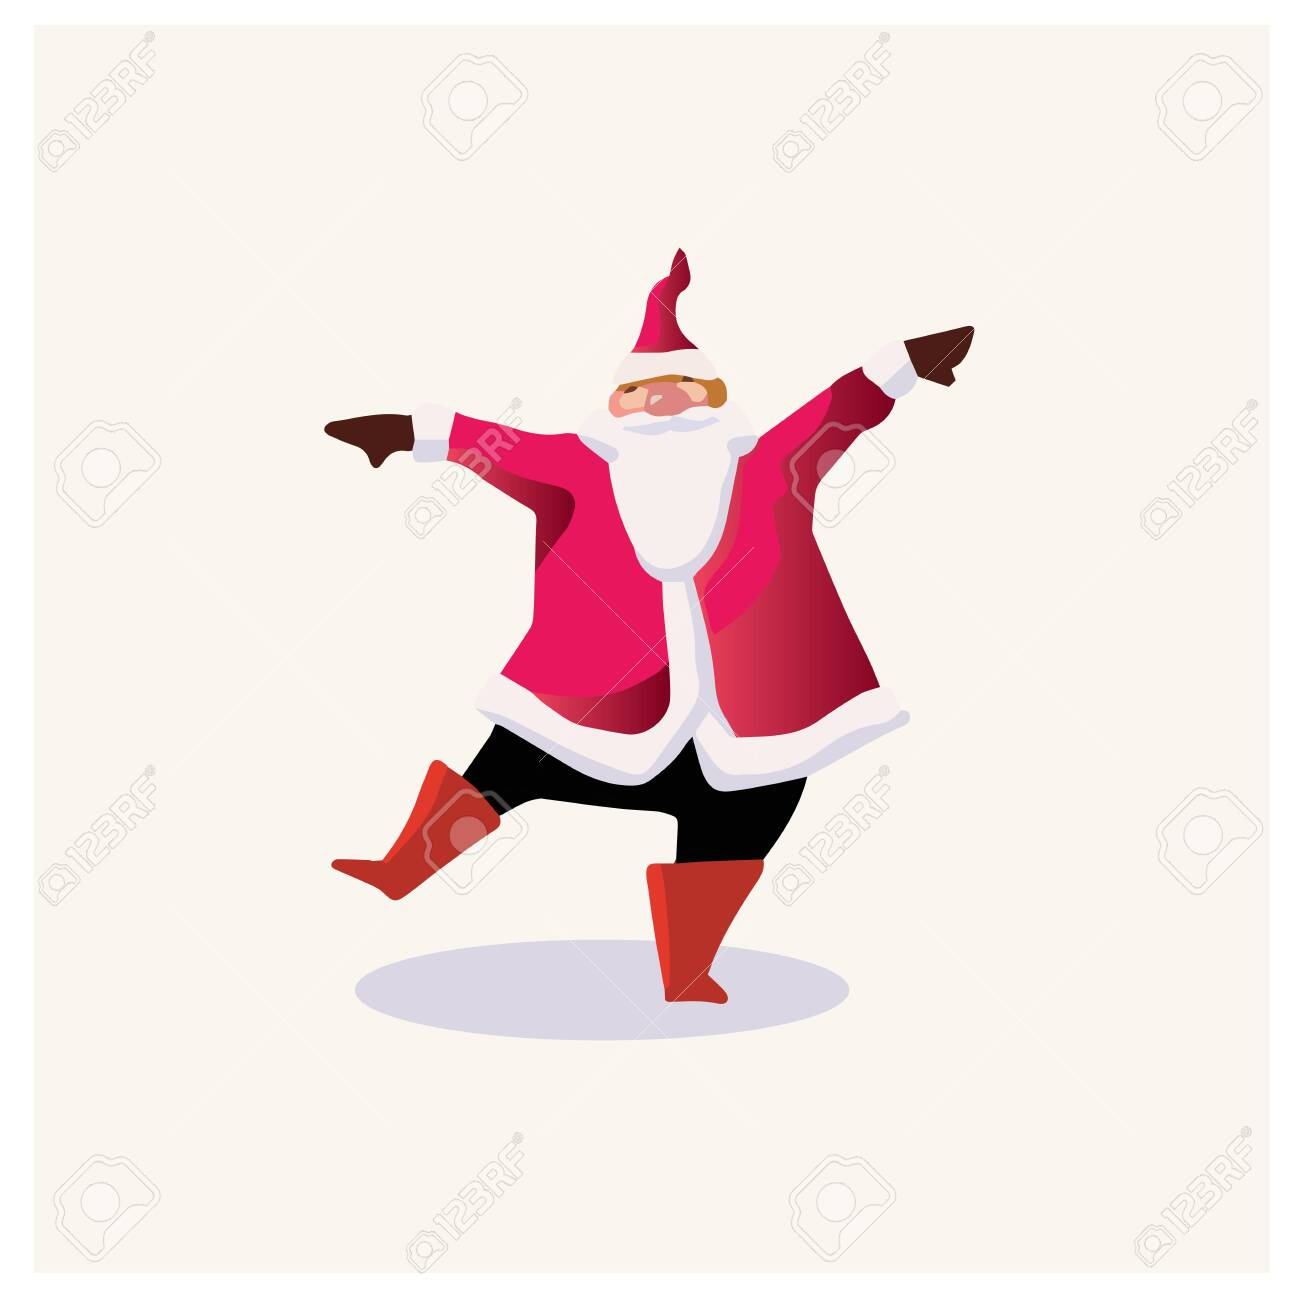 Set of cartoon Christmas illustrations. Funny happy Santa Claus character with gift, bag with presents, waving and greeting. For Christmas cards, banners, tags and labels. - 132391897